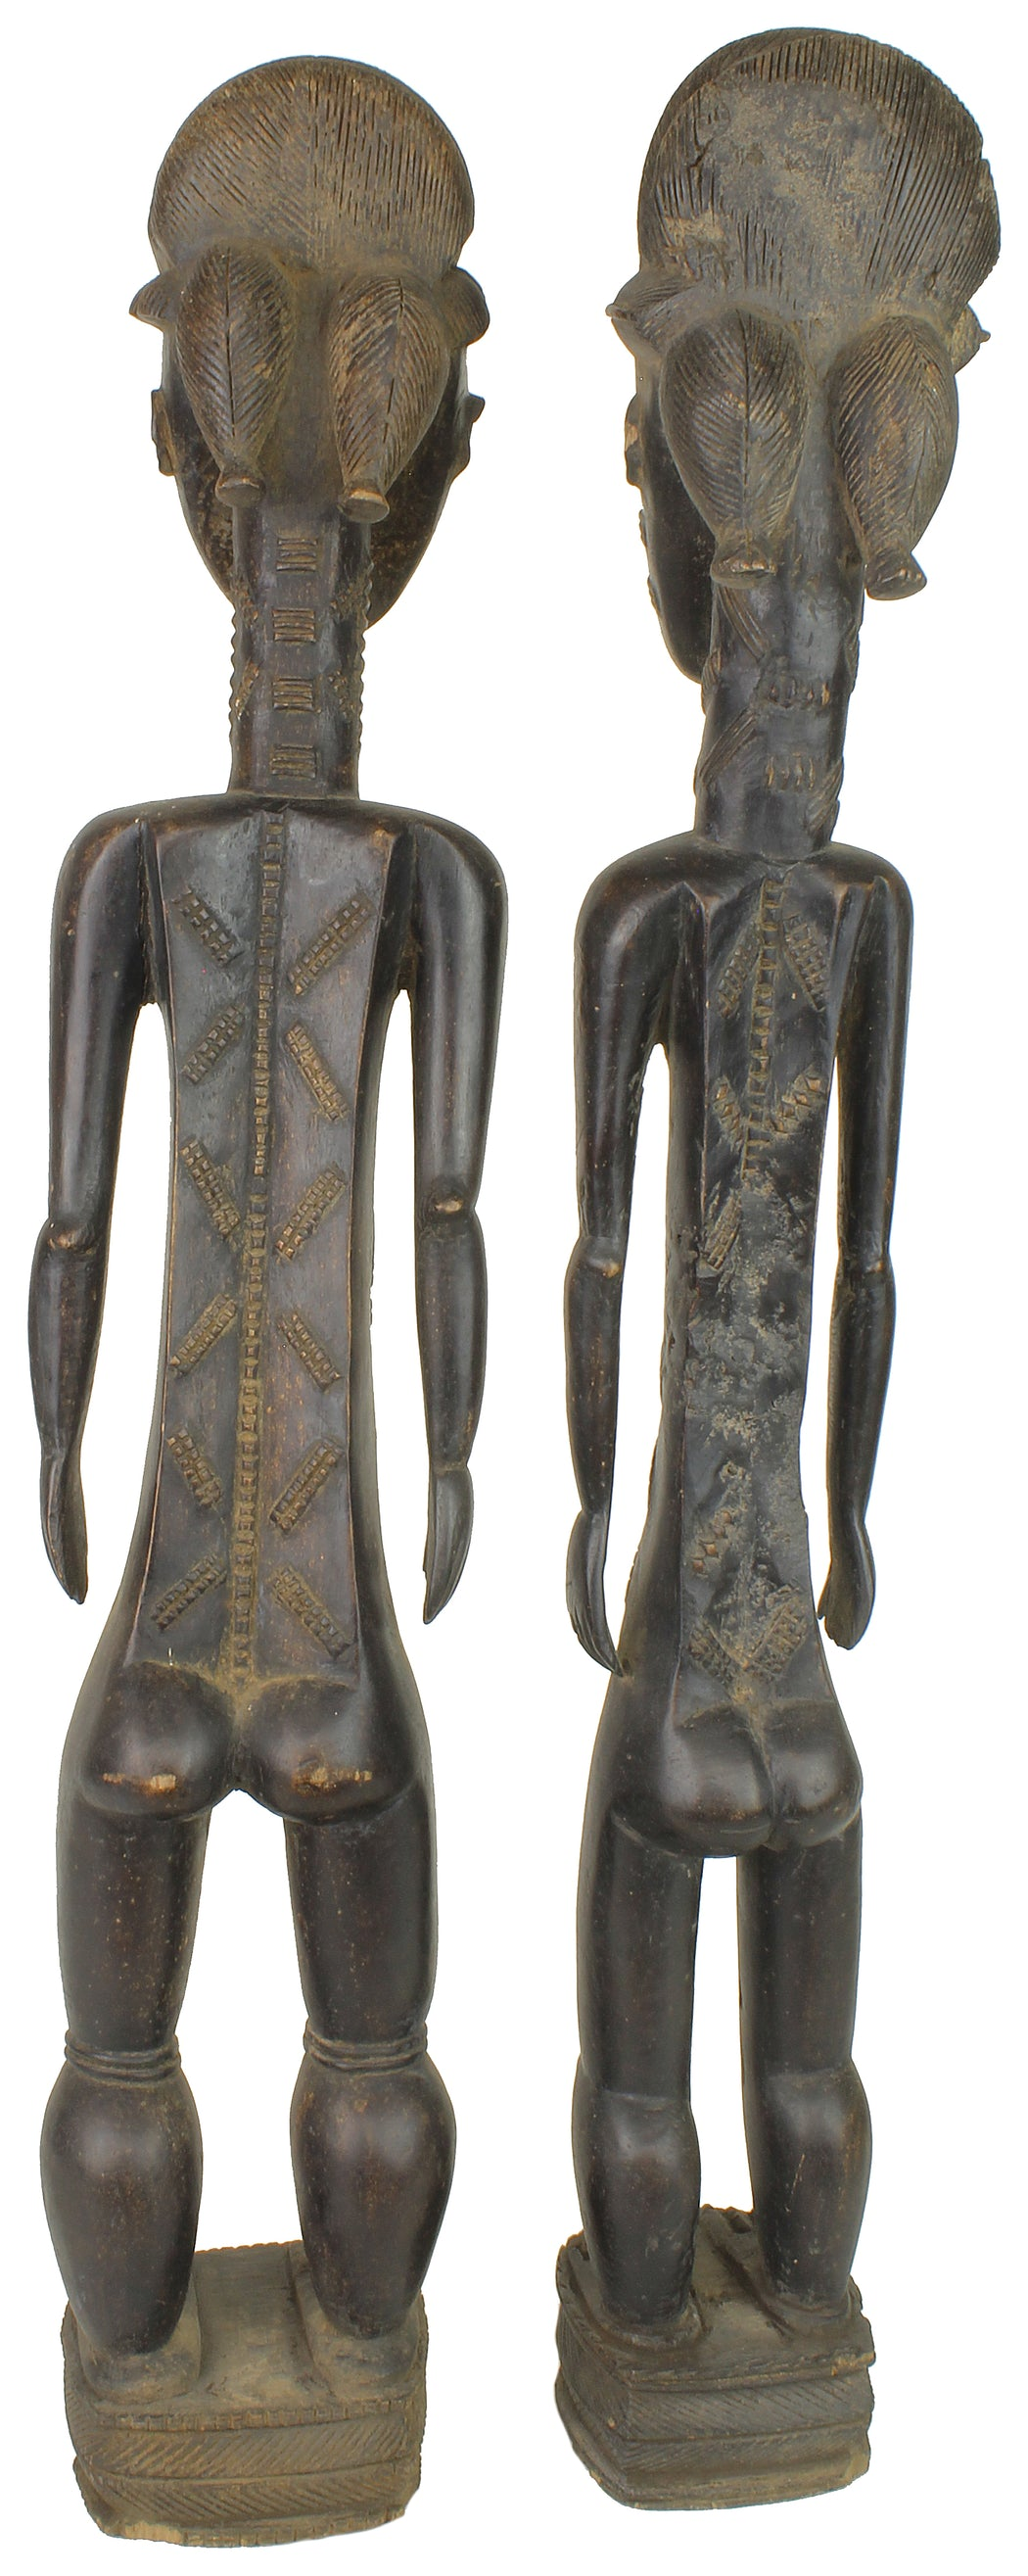 "Very Large Baule Aise Usu Spirit Mate Statues Pair | 33"" - Niger Bend"